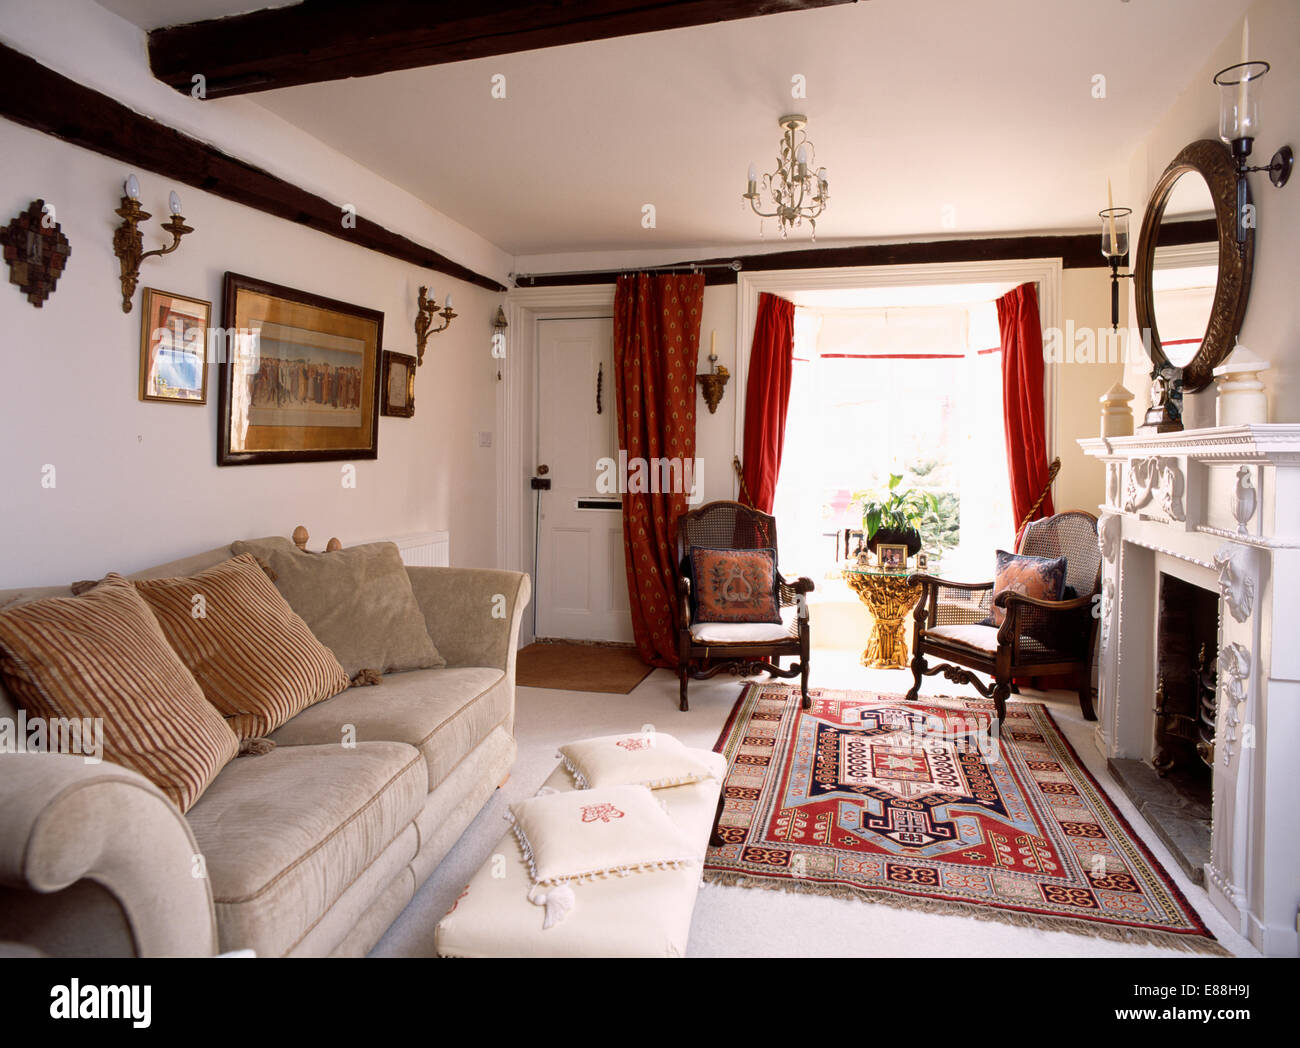 country rug for living room idea images patterned and beige velour sofa in with red curtains on window